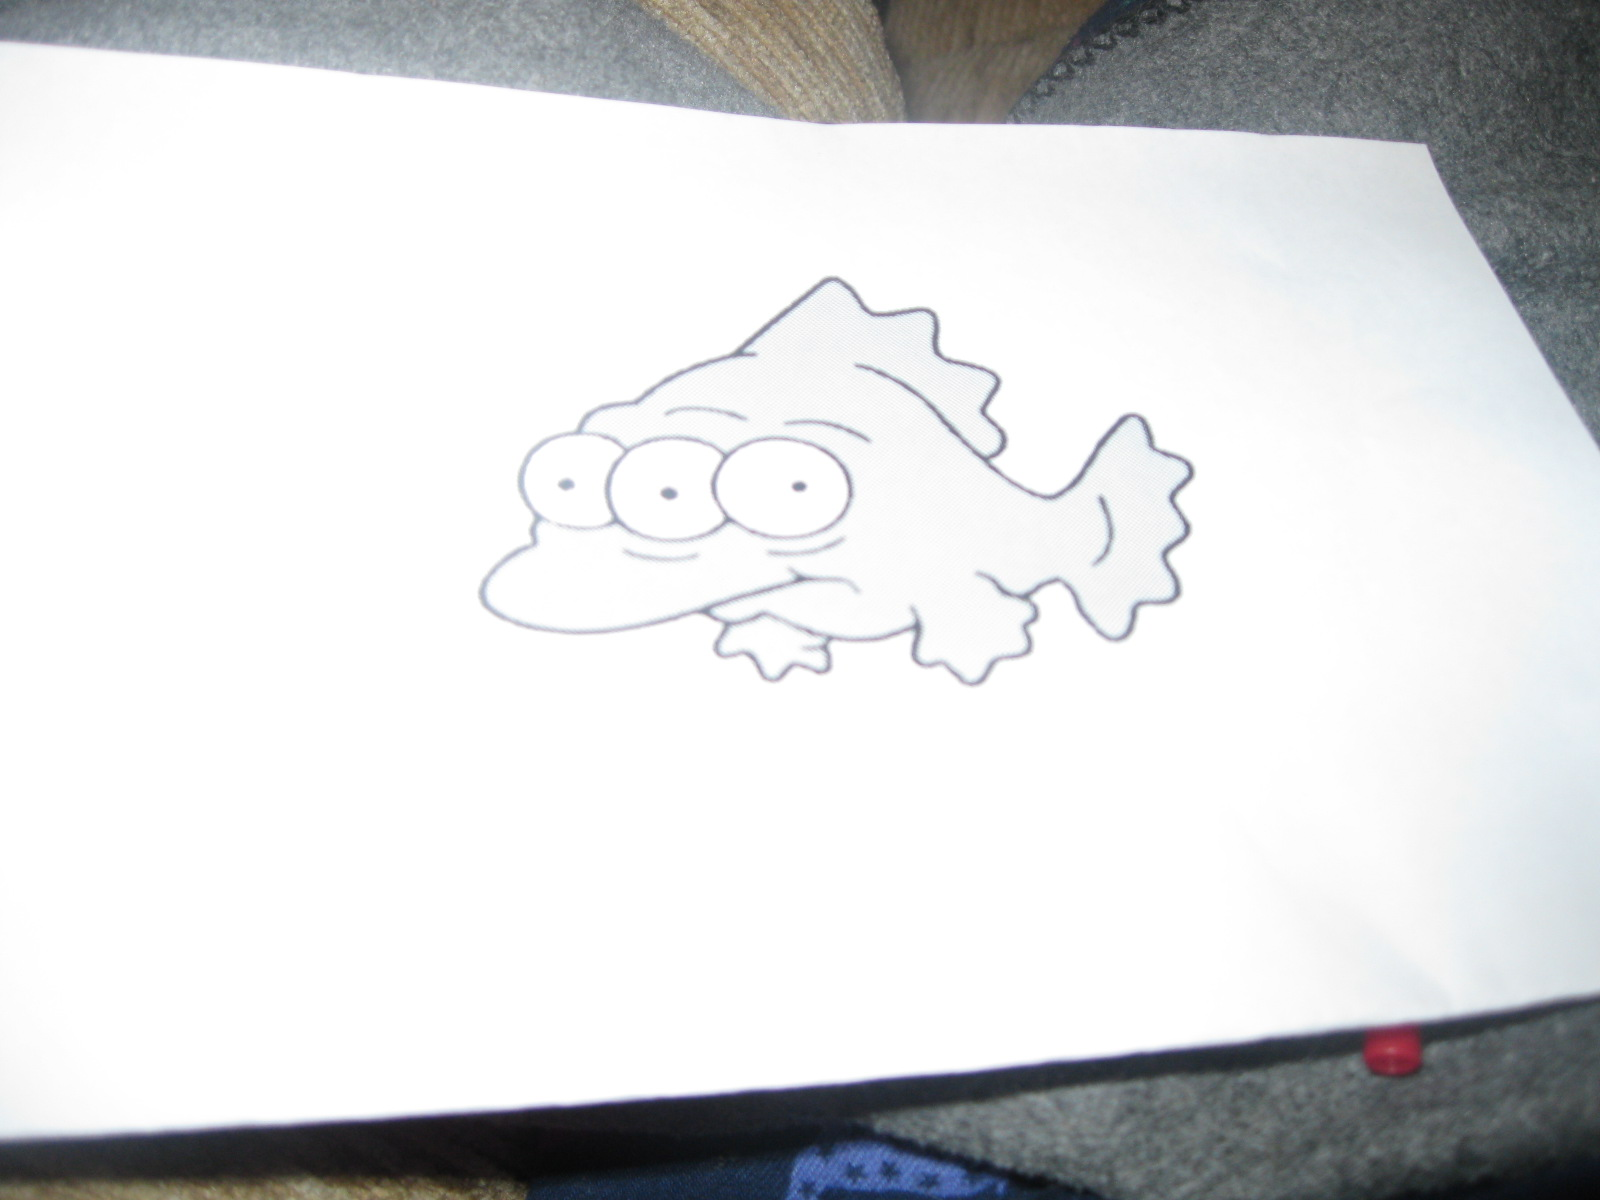 Picture of How to Make a 3 Eyed Fish